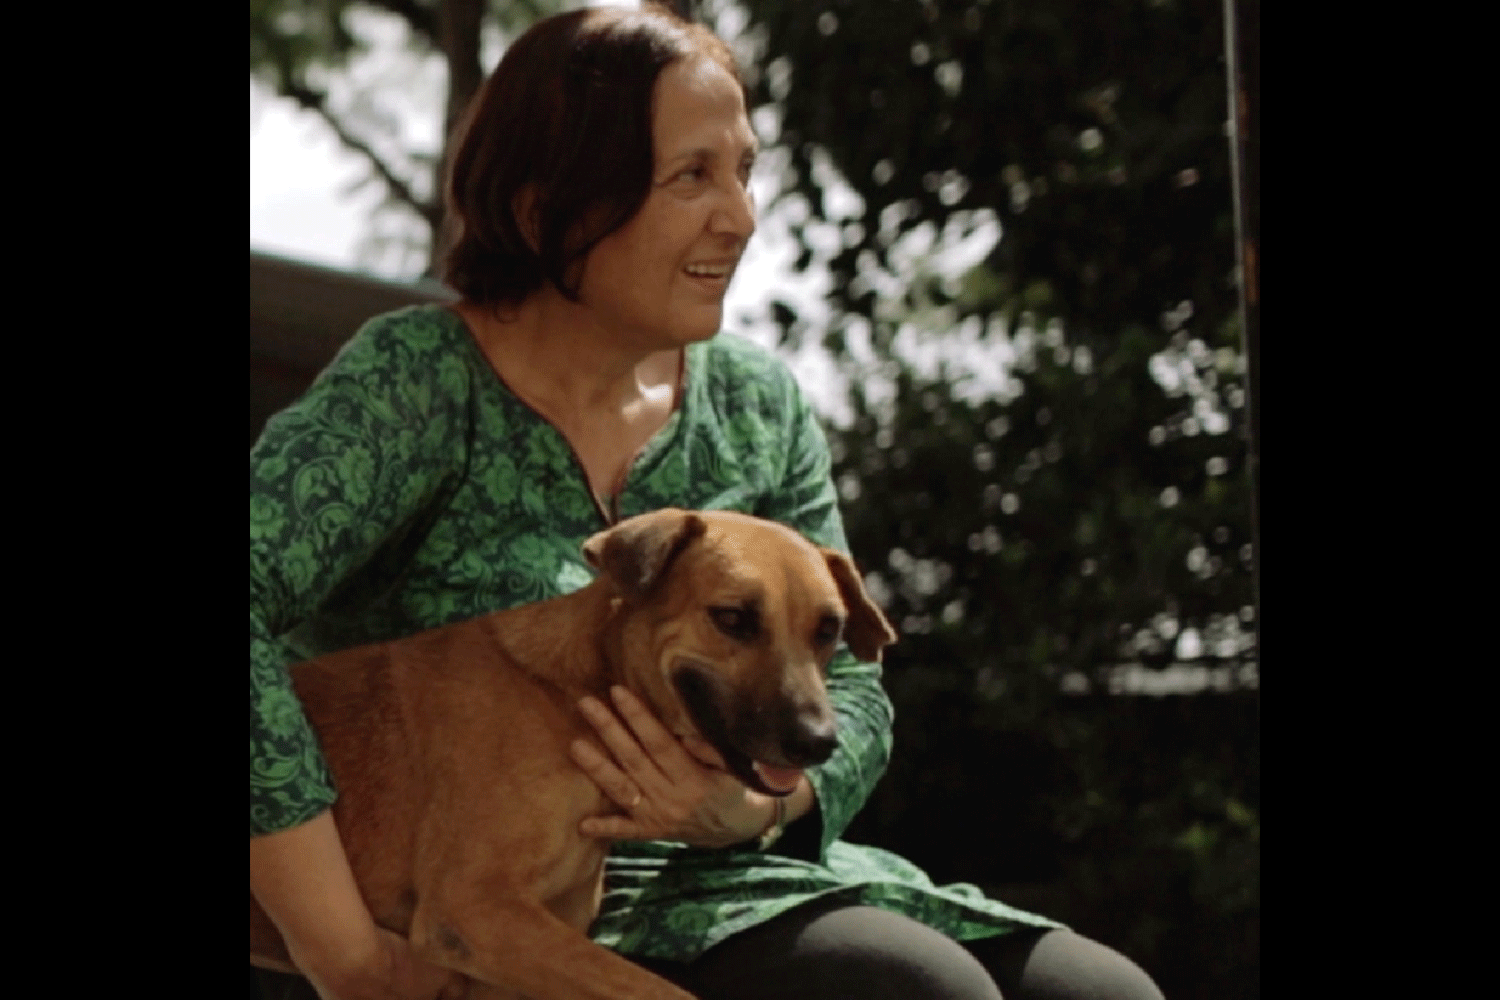 Meet Vivienne. She found her secret to happiness: dedicating her life to saving the street animals in India